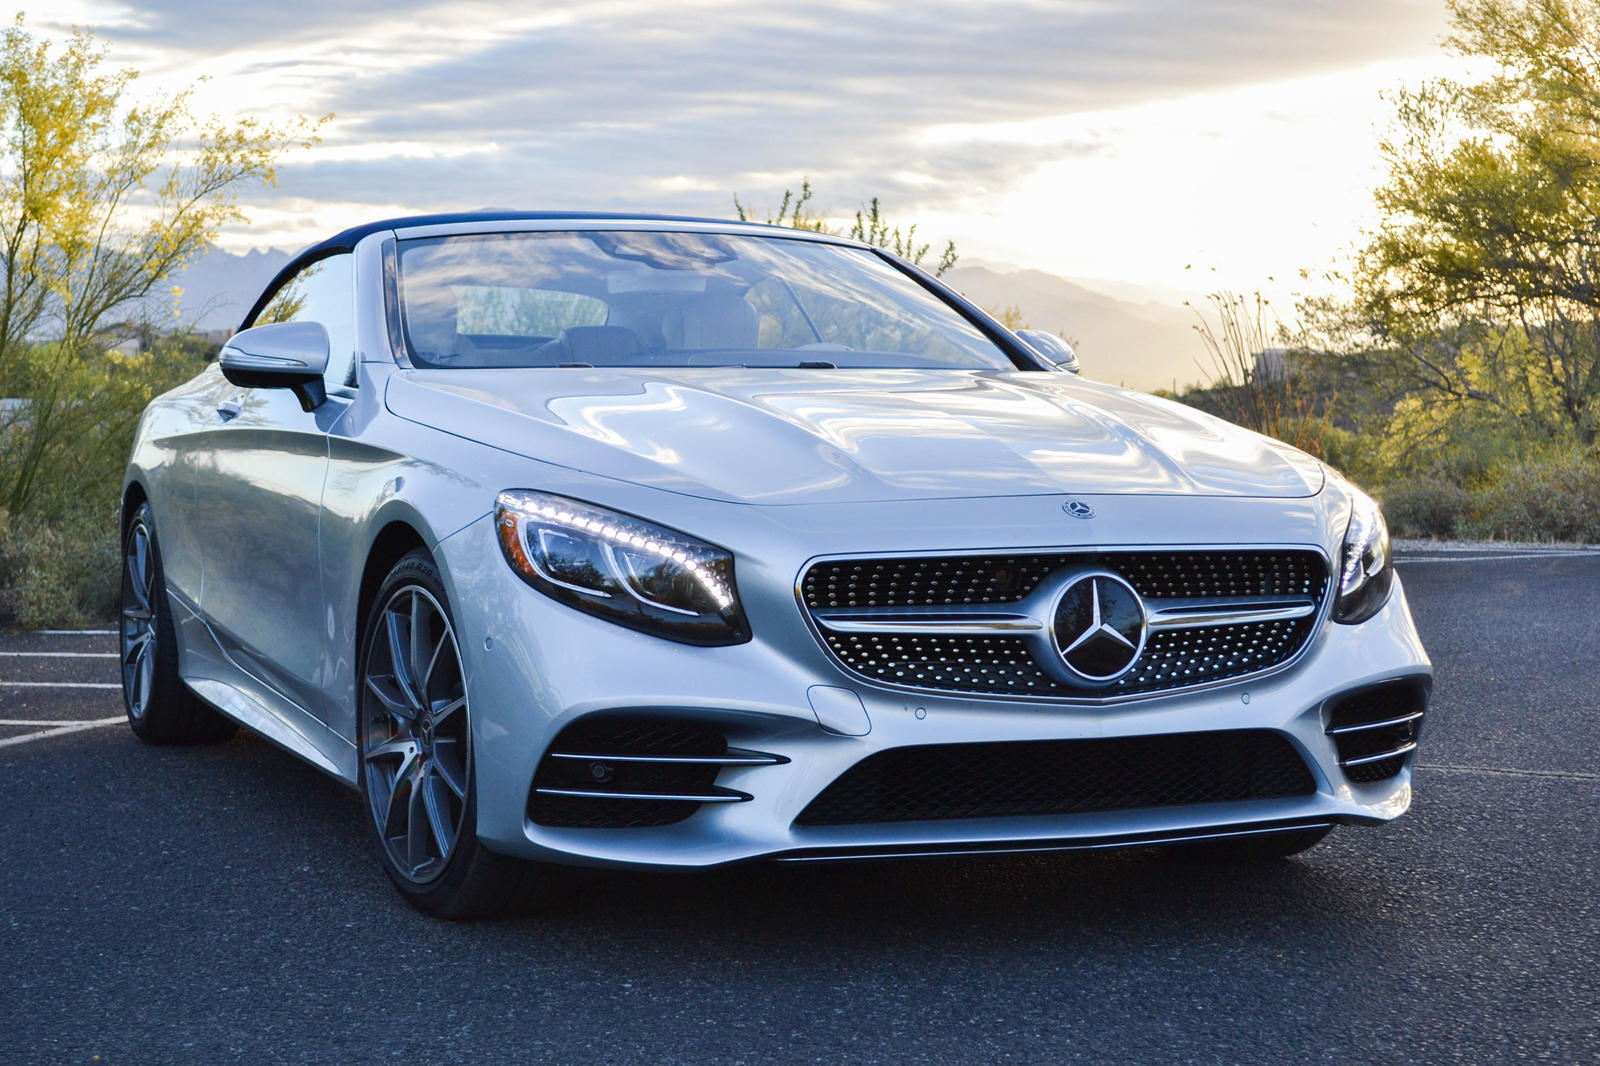 2020 mercedes benz s class convertible review trims specs price new interior features exterior design and specifications carbuzz carbuzz